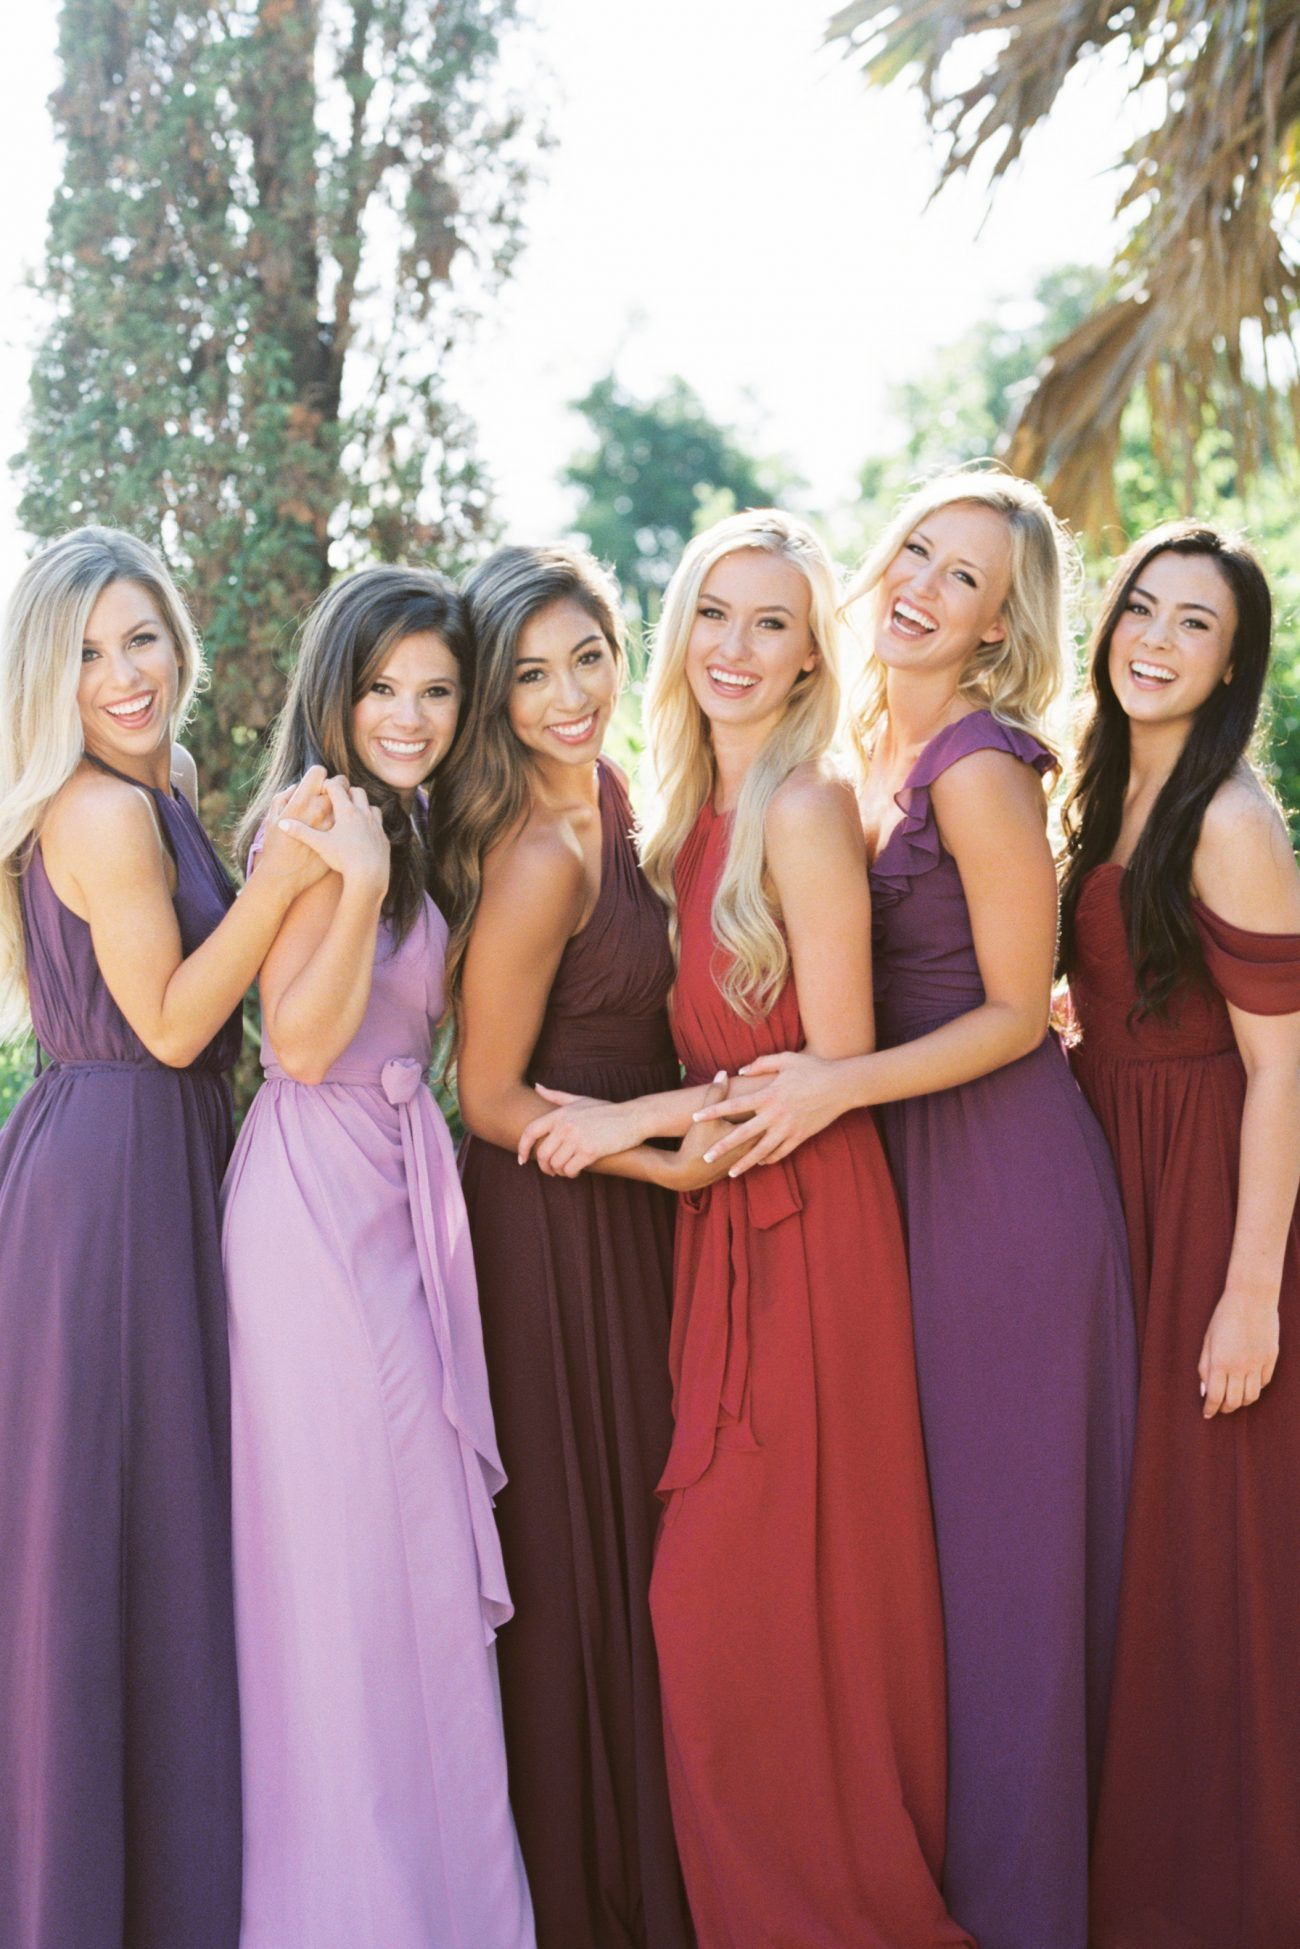 a5d3949eb9 What a beautiful selection of berry and purple colors of bridesmaid dresses  from @Revelry! #revelry #bridesmaid #bridesmaiddresses